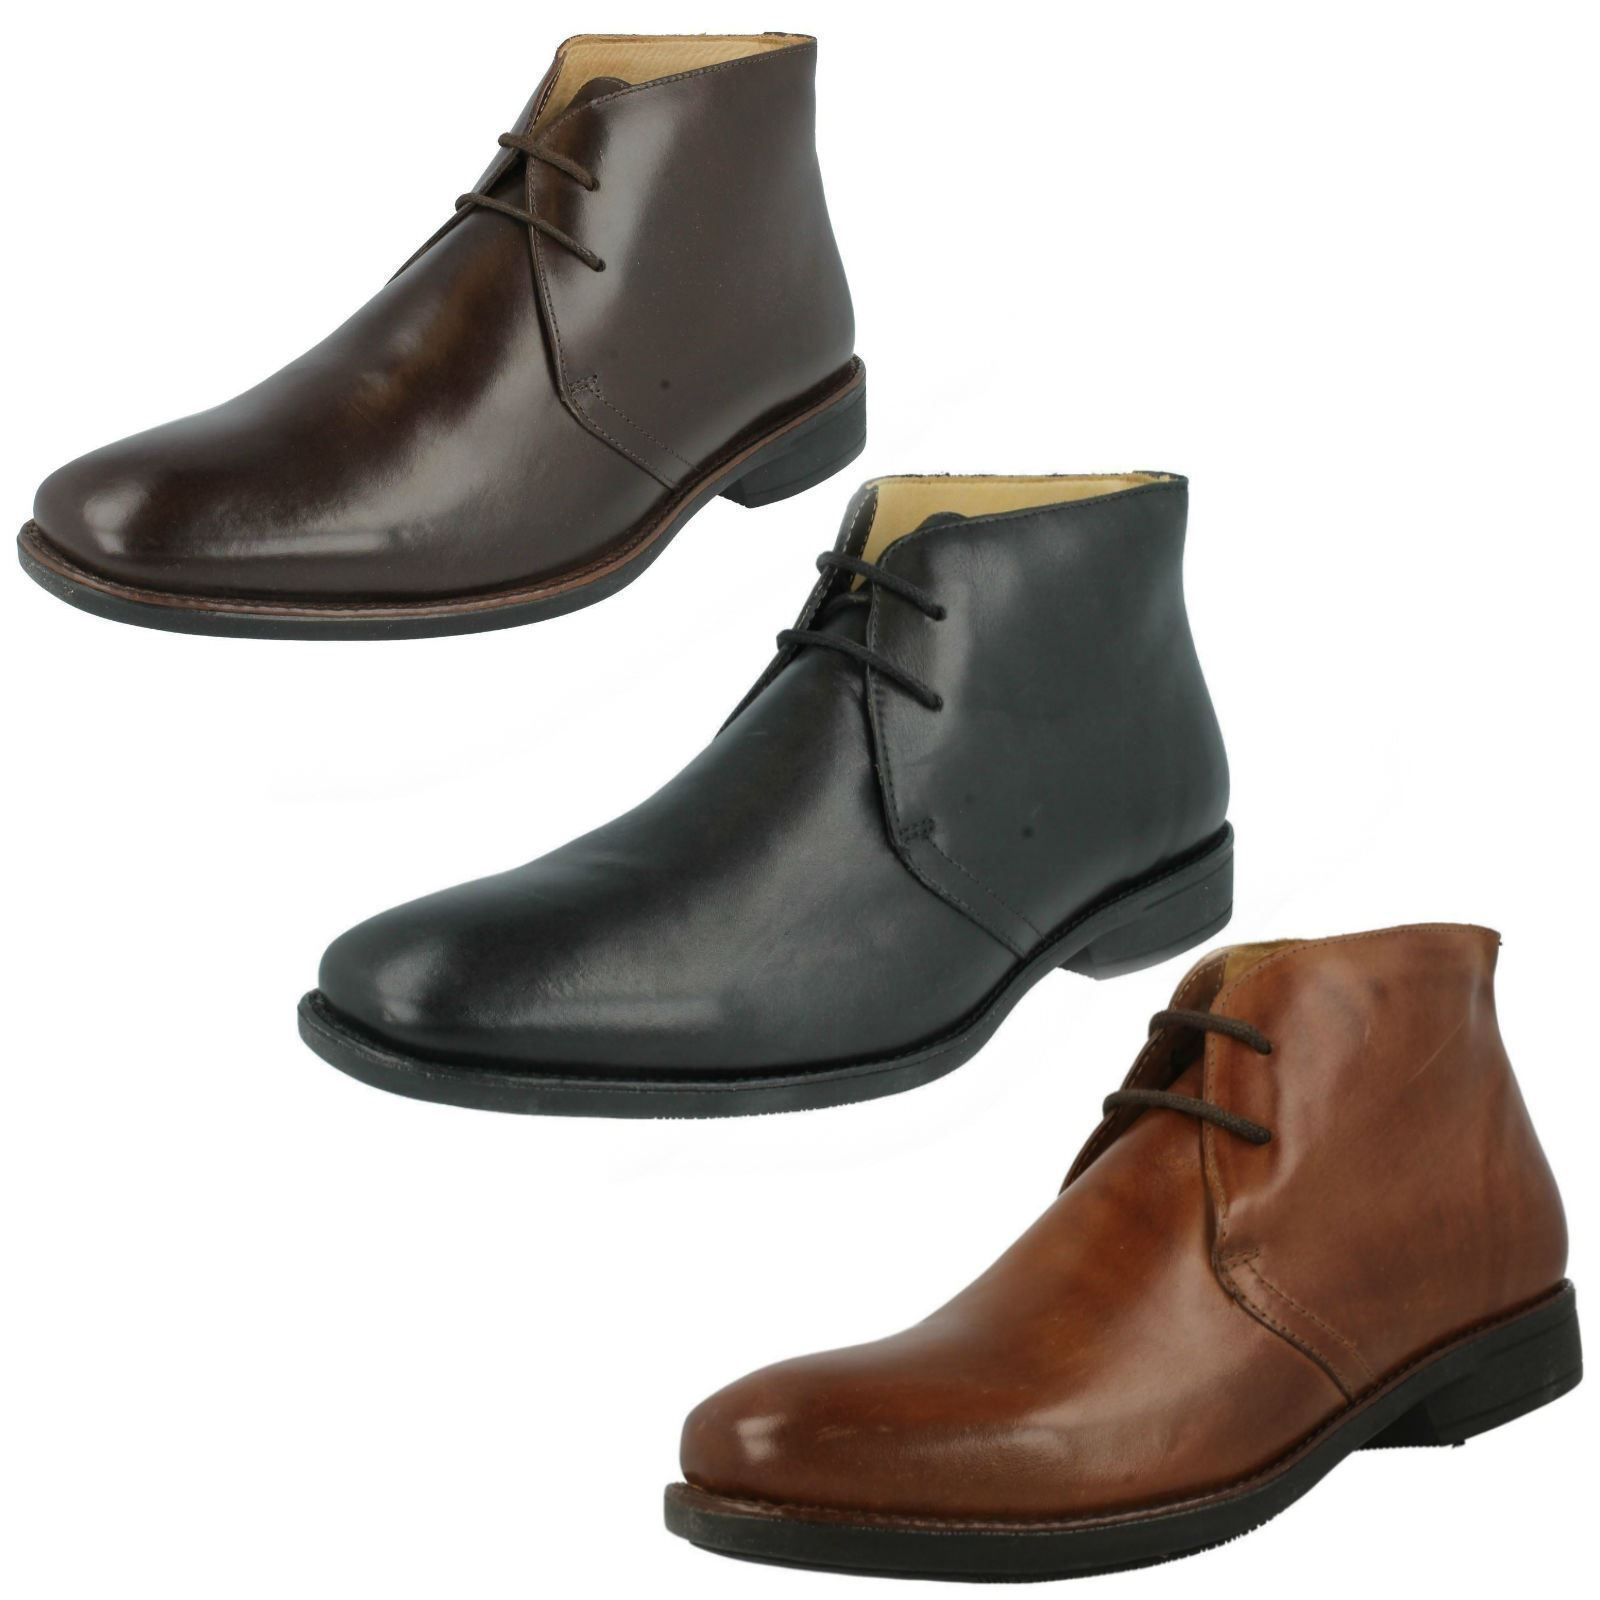 Mens Anatomic & Co Ankle Boots - 929224LB